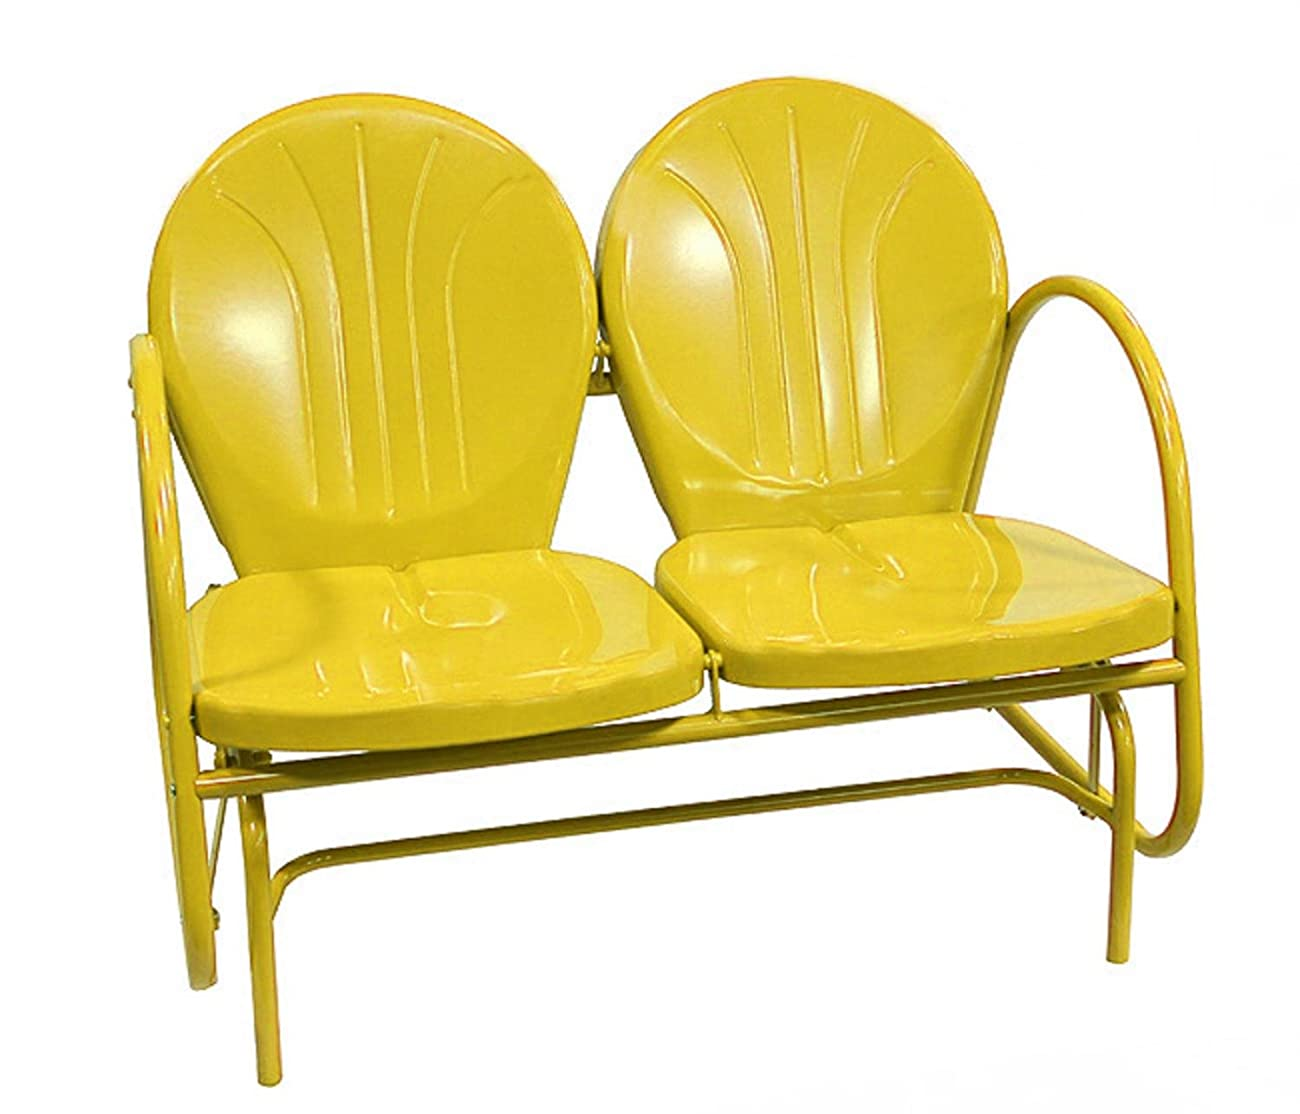 Sunshine Yellow Retro Metal Tulip Double Glider 0